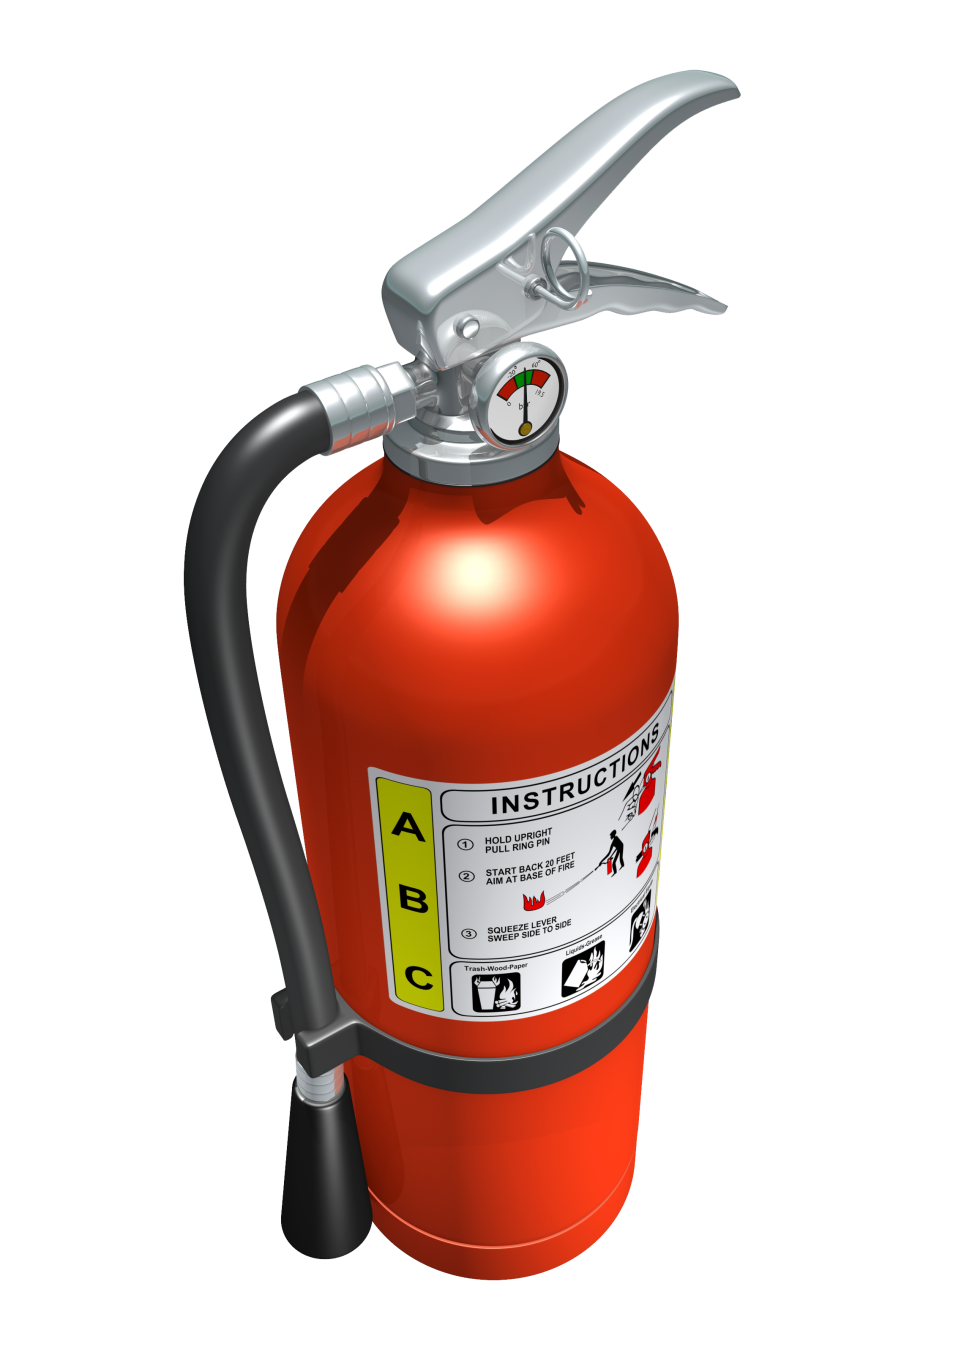 Illustration of a red fire extinguisher